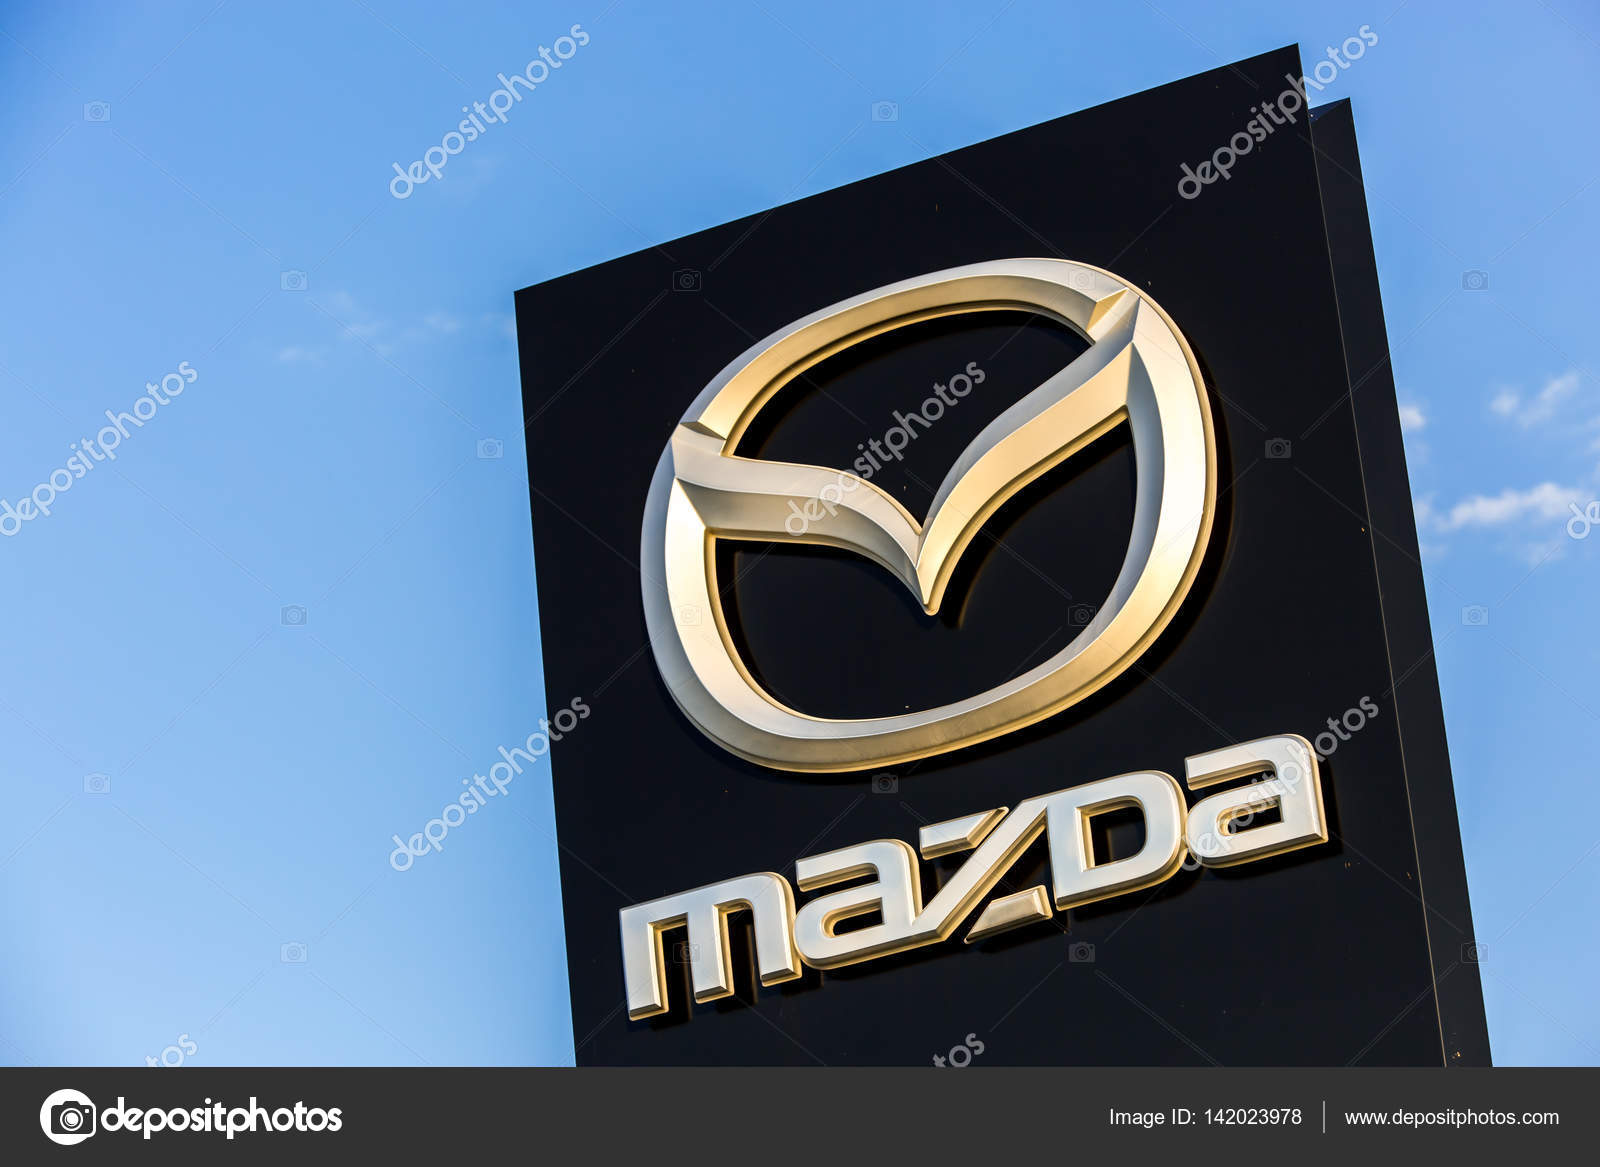 la rochelle france august 30 2016 official dealership sign of mazda against the blue sky. Black Bedroom Furniture Sets. Home Design Ideas